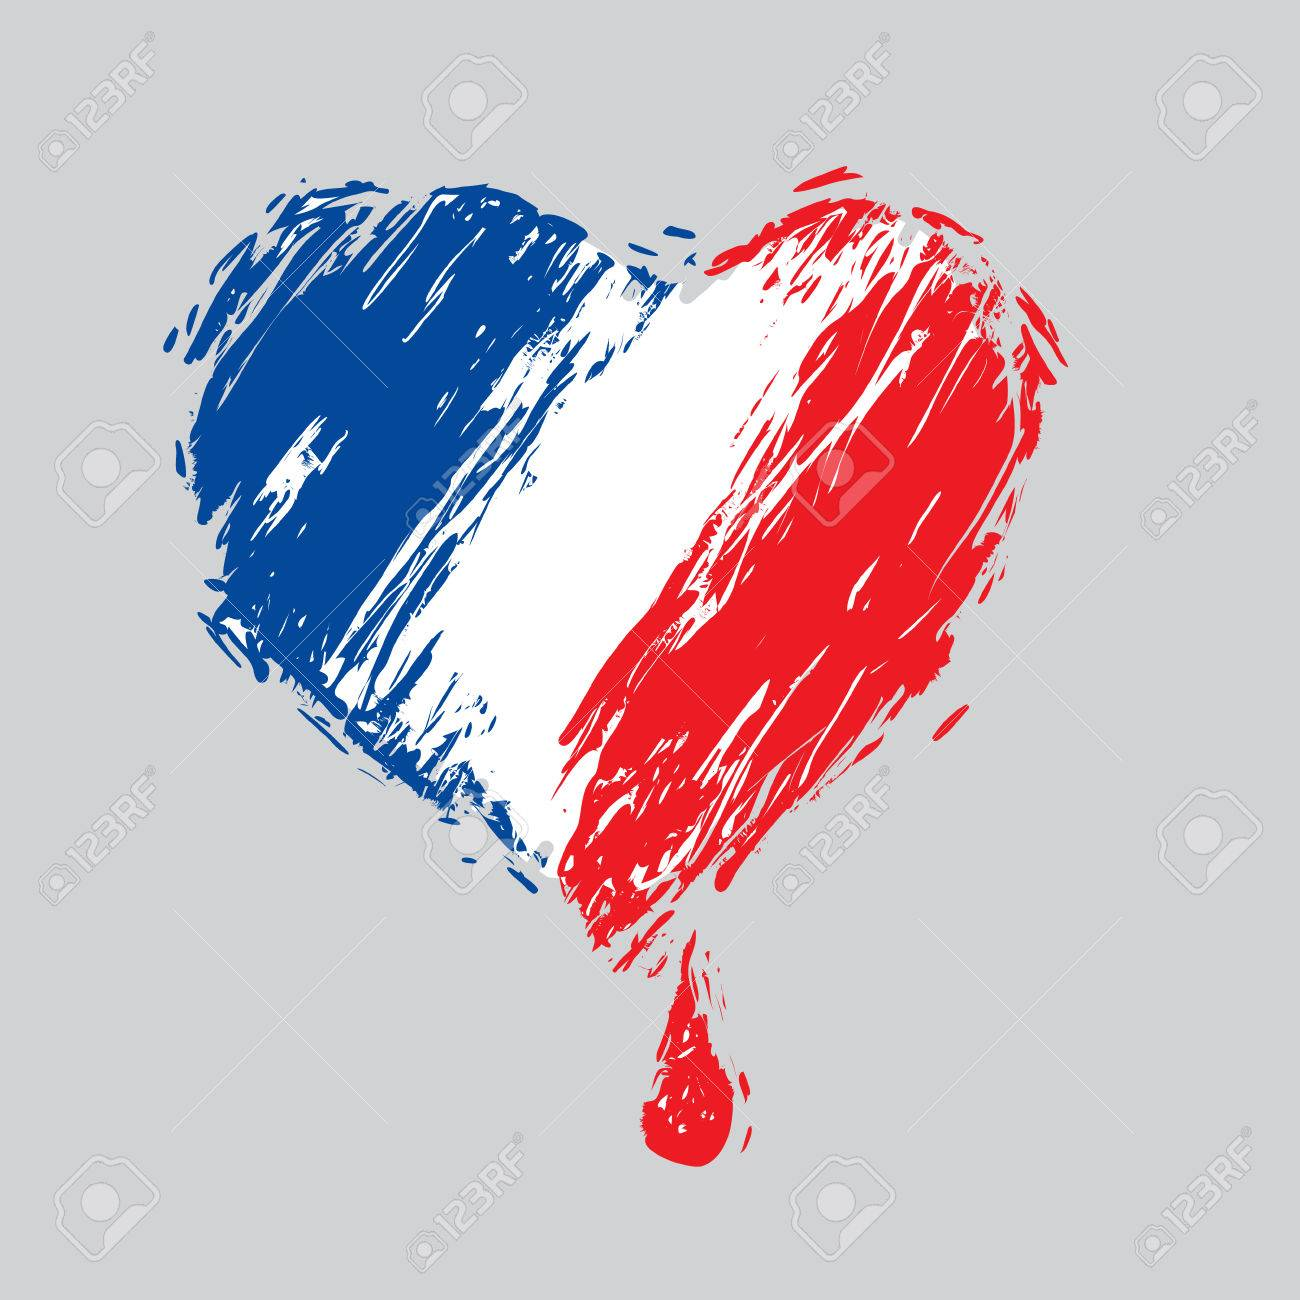 Bleeding heart in the colors of the french flag as a symbol bleeding heart in the colors of the french flag as a symbol of national mourning buycottarizona